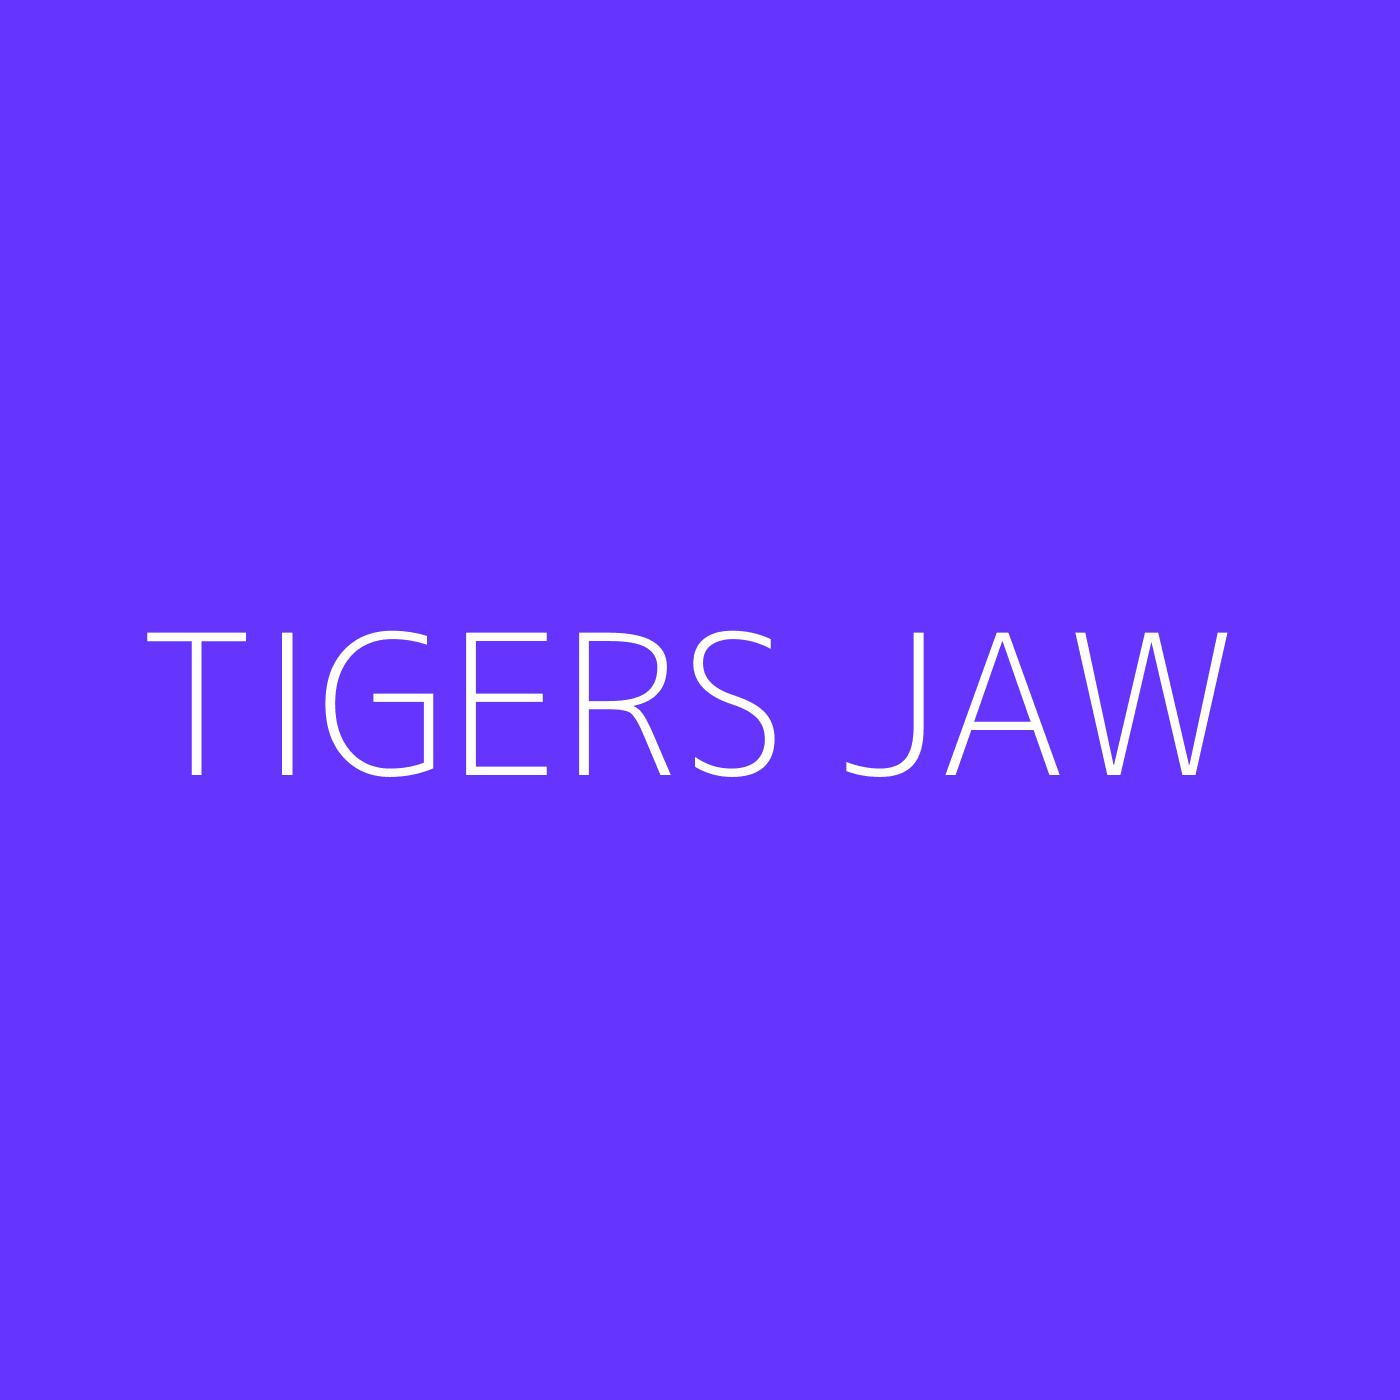 Tigers Jaw Playlist Artwork